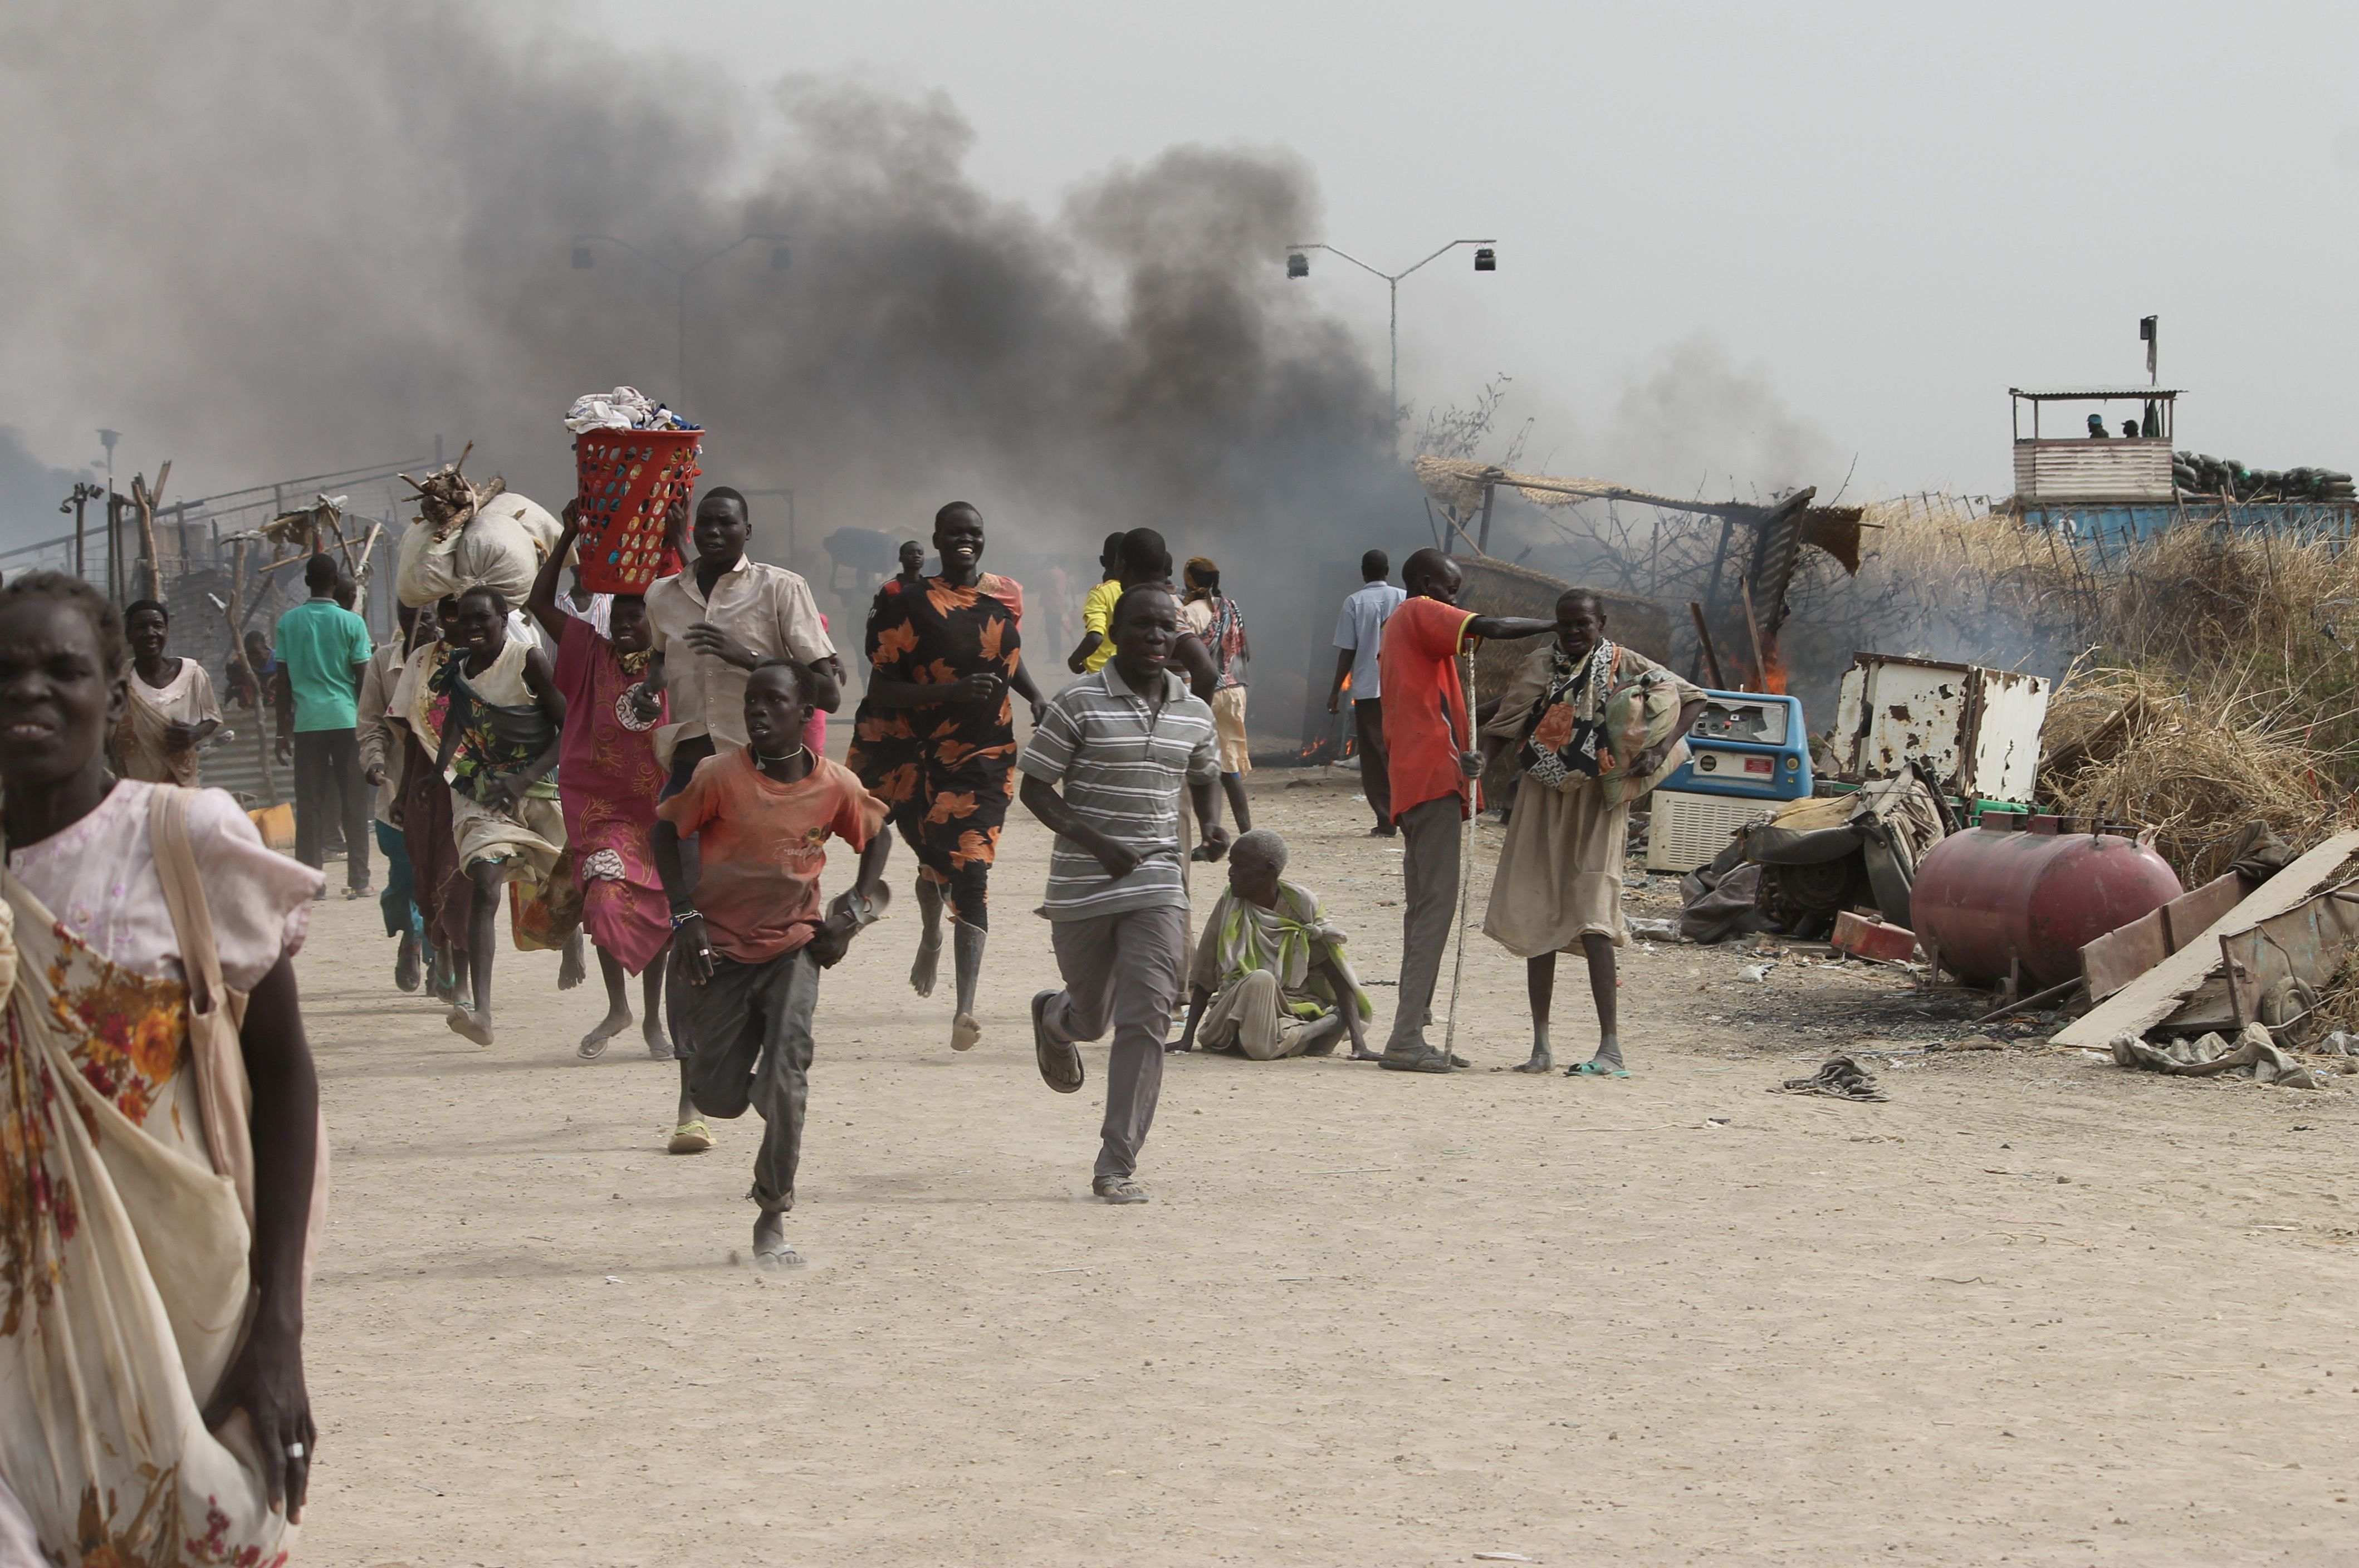 Sudanese civilians flee fighting in an U.N. base in the northeastern town of Malakal on February 18, 2016, where gunmen opened fire on civilians